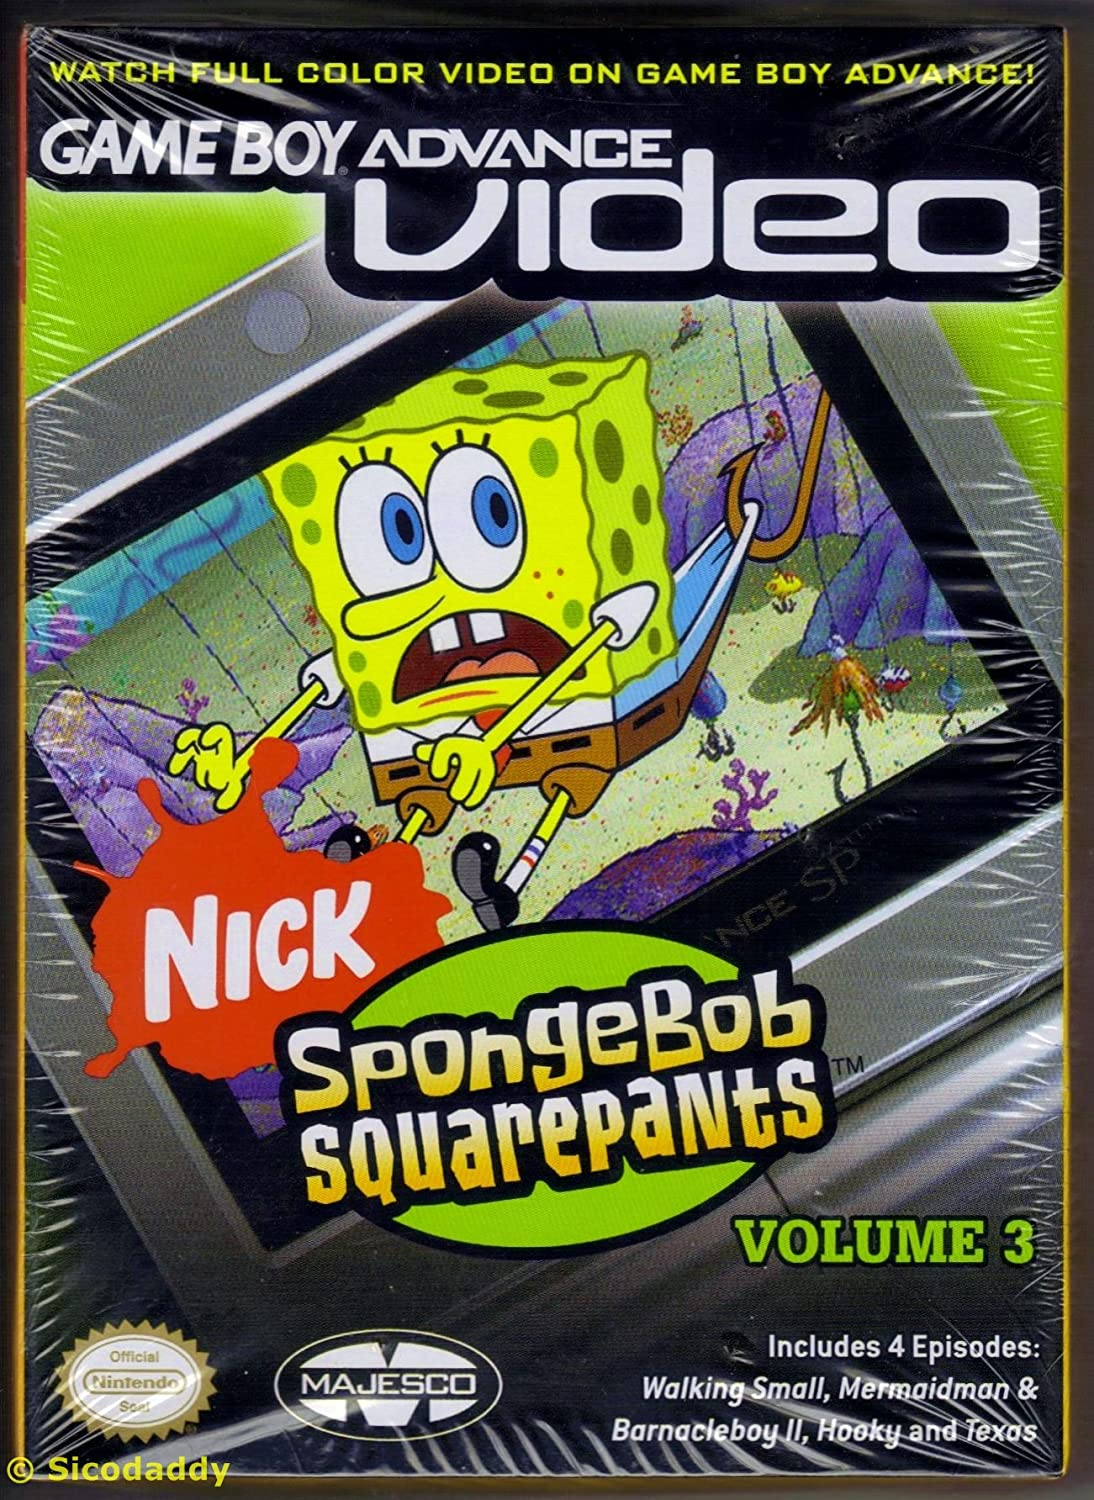 SpongeBob SquarePants Volume 3